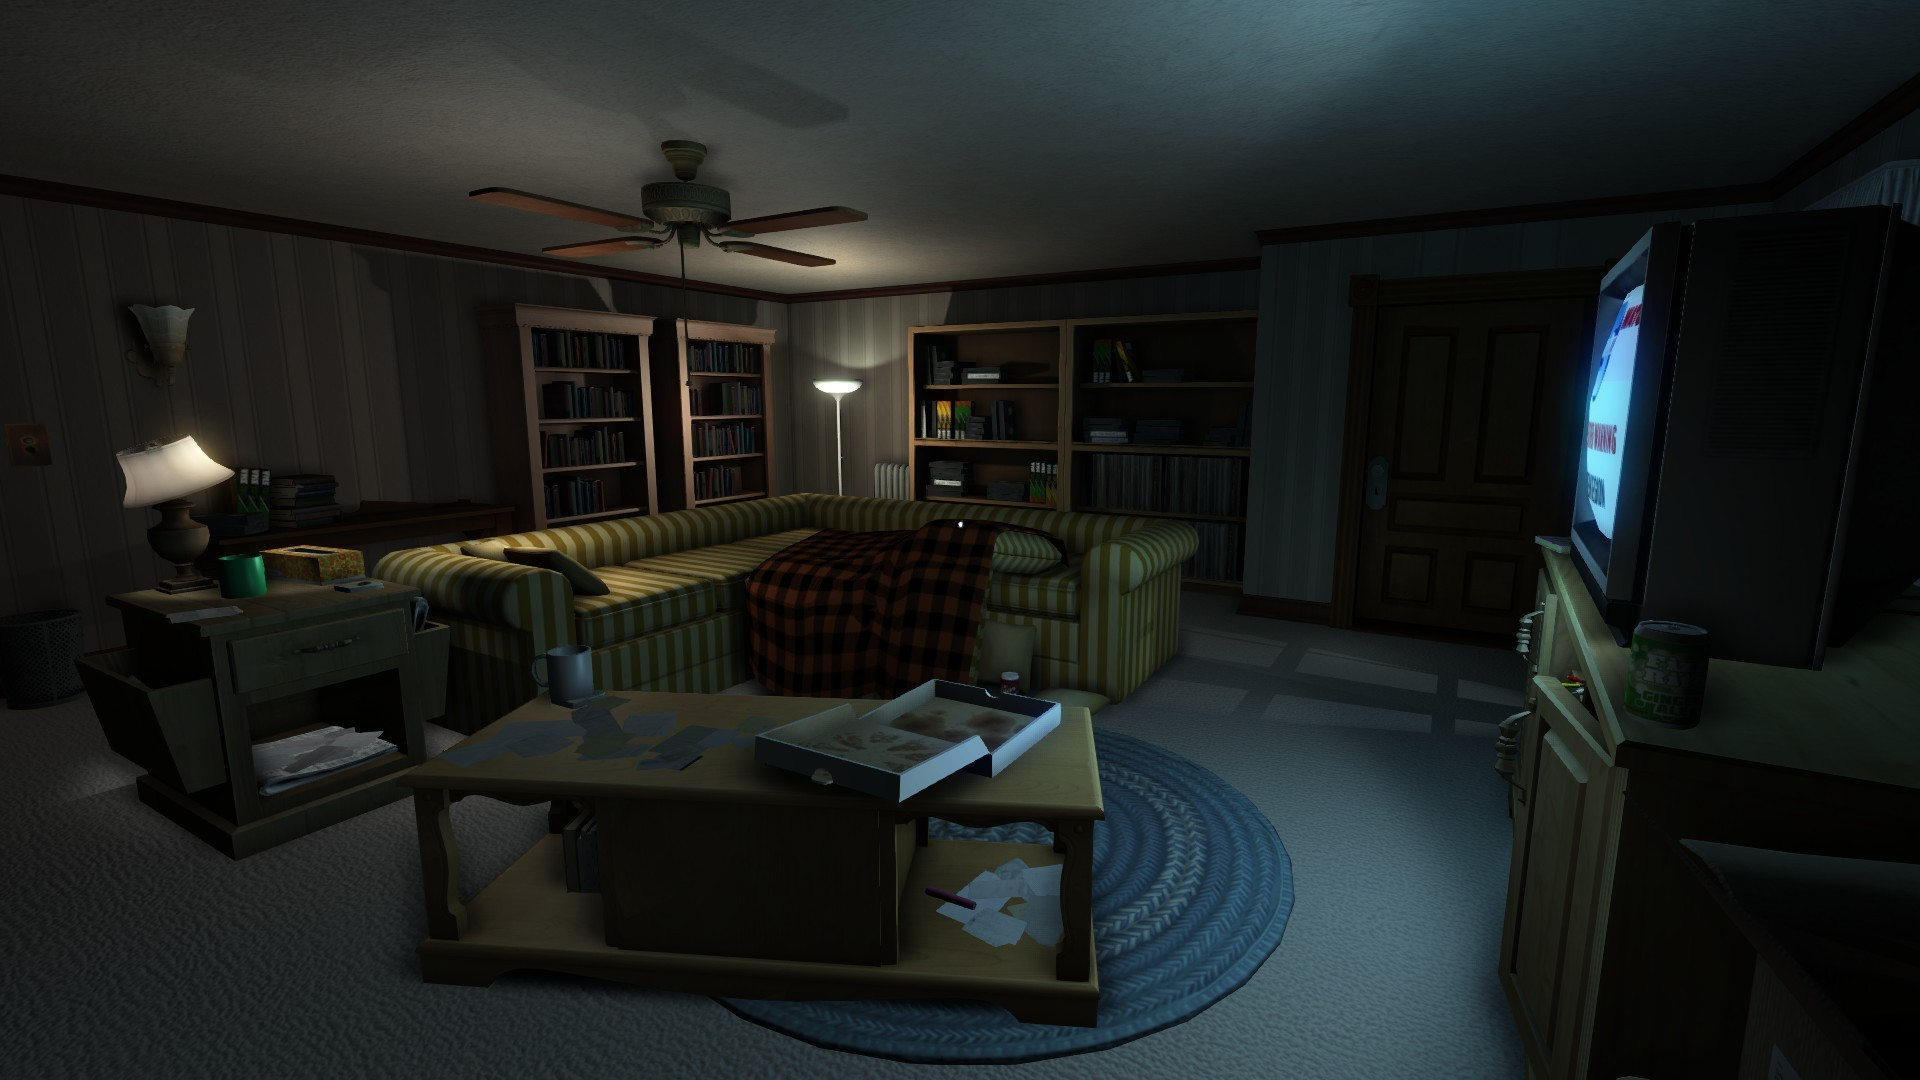 11. Gone Home